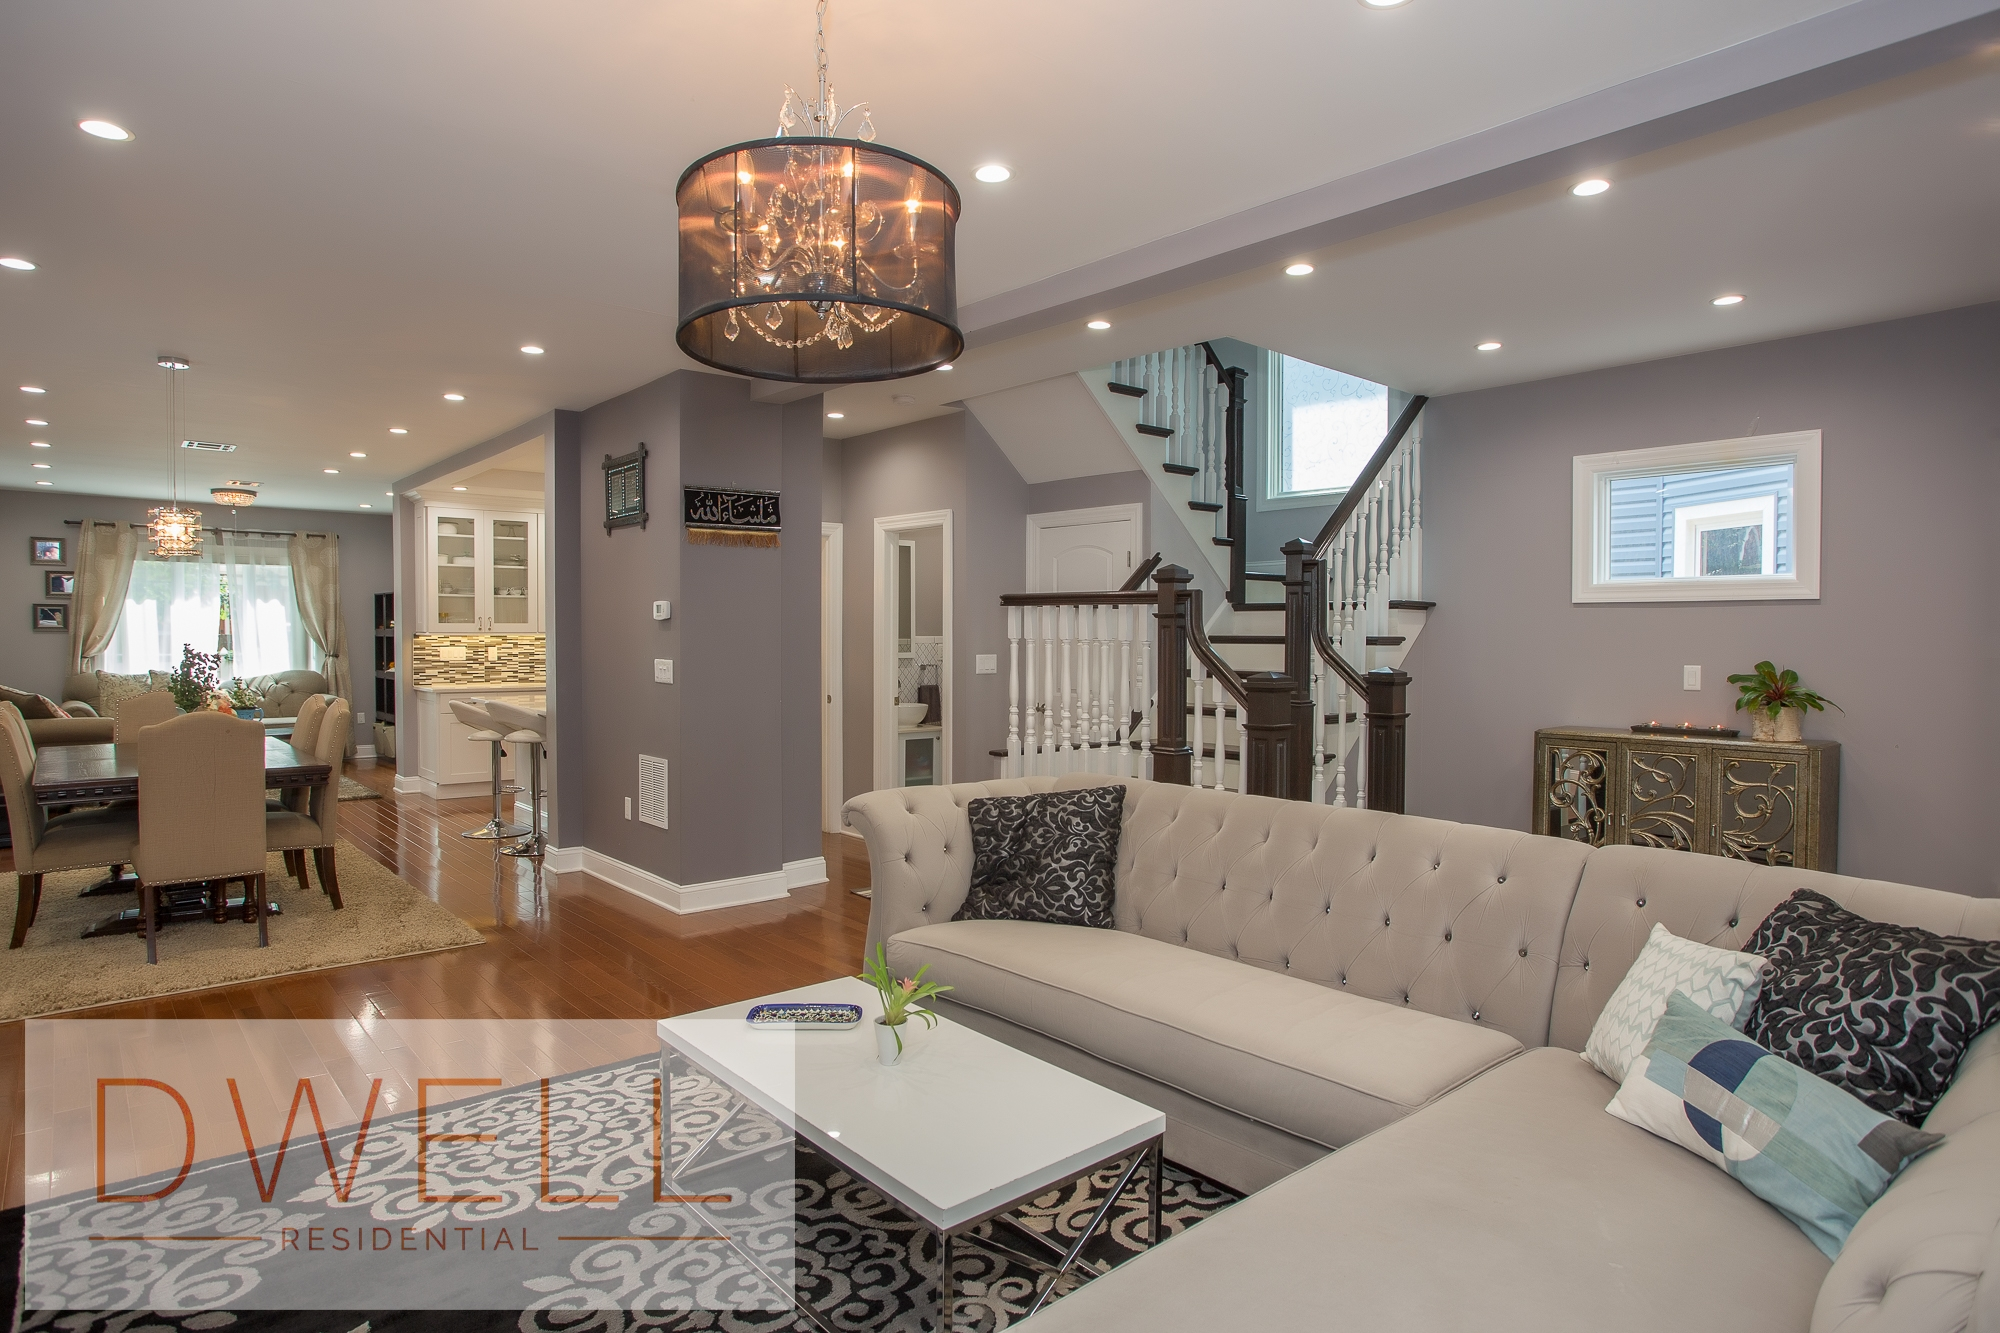 Property for sale in brooklyn apartment houses for sale for 125 the terrace wellington